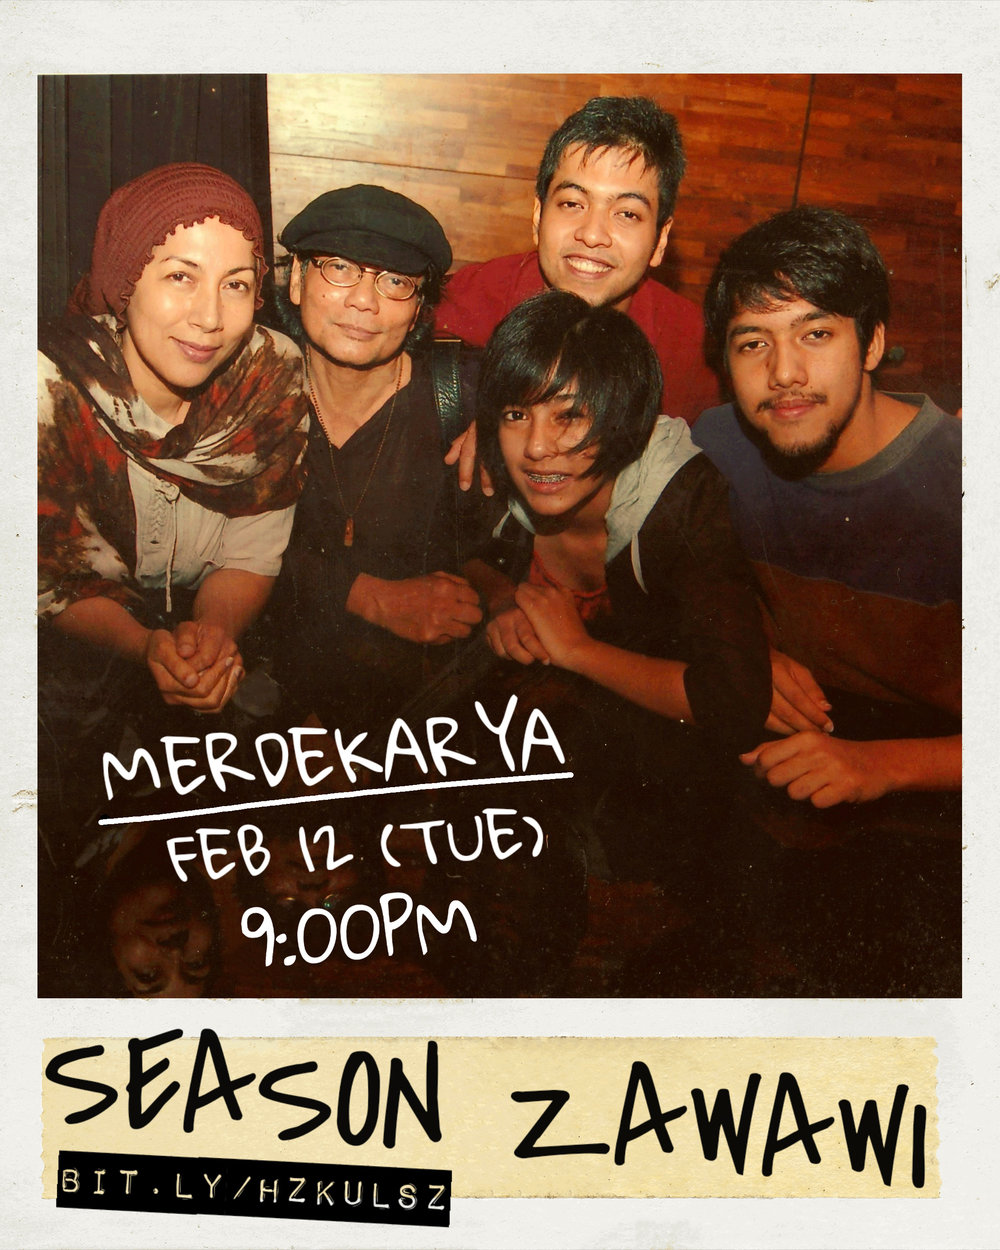 SEASON ZAWAWI - Its been 7 years since the Zawawi family has been back in our home country Malaysia, and we're celebrating it with a show at good ol' Merdekarya (KUL). Come catch up with the family and I while we're still in town! RSVP here.